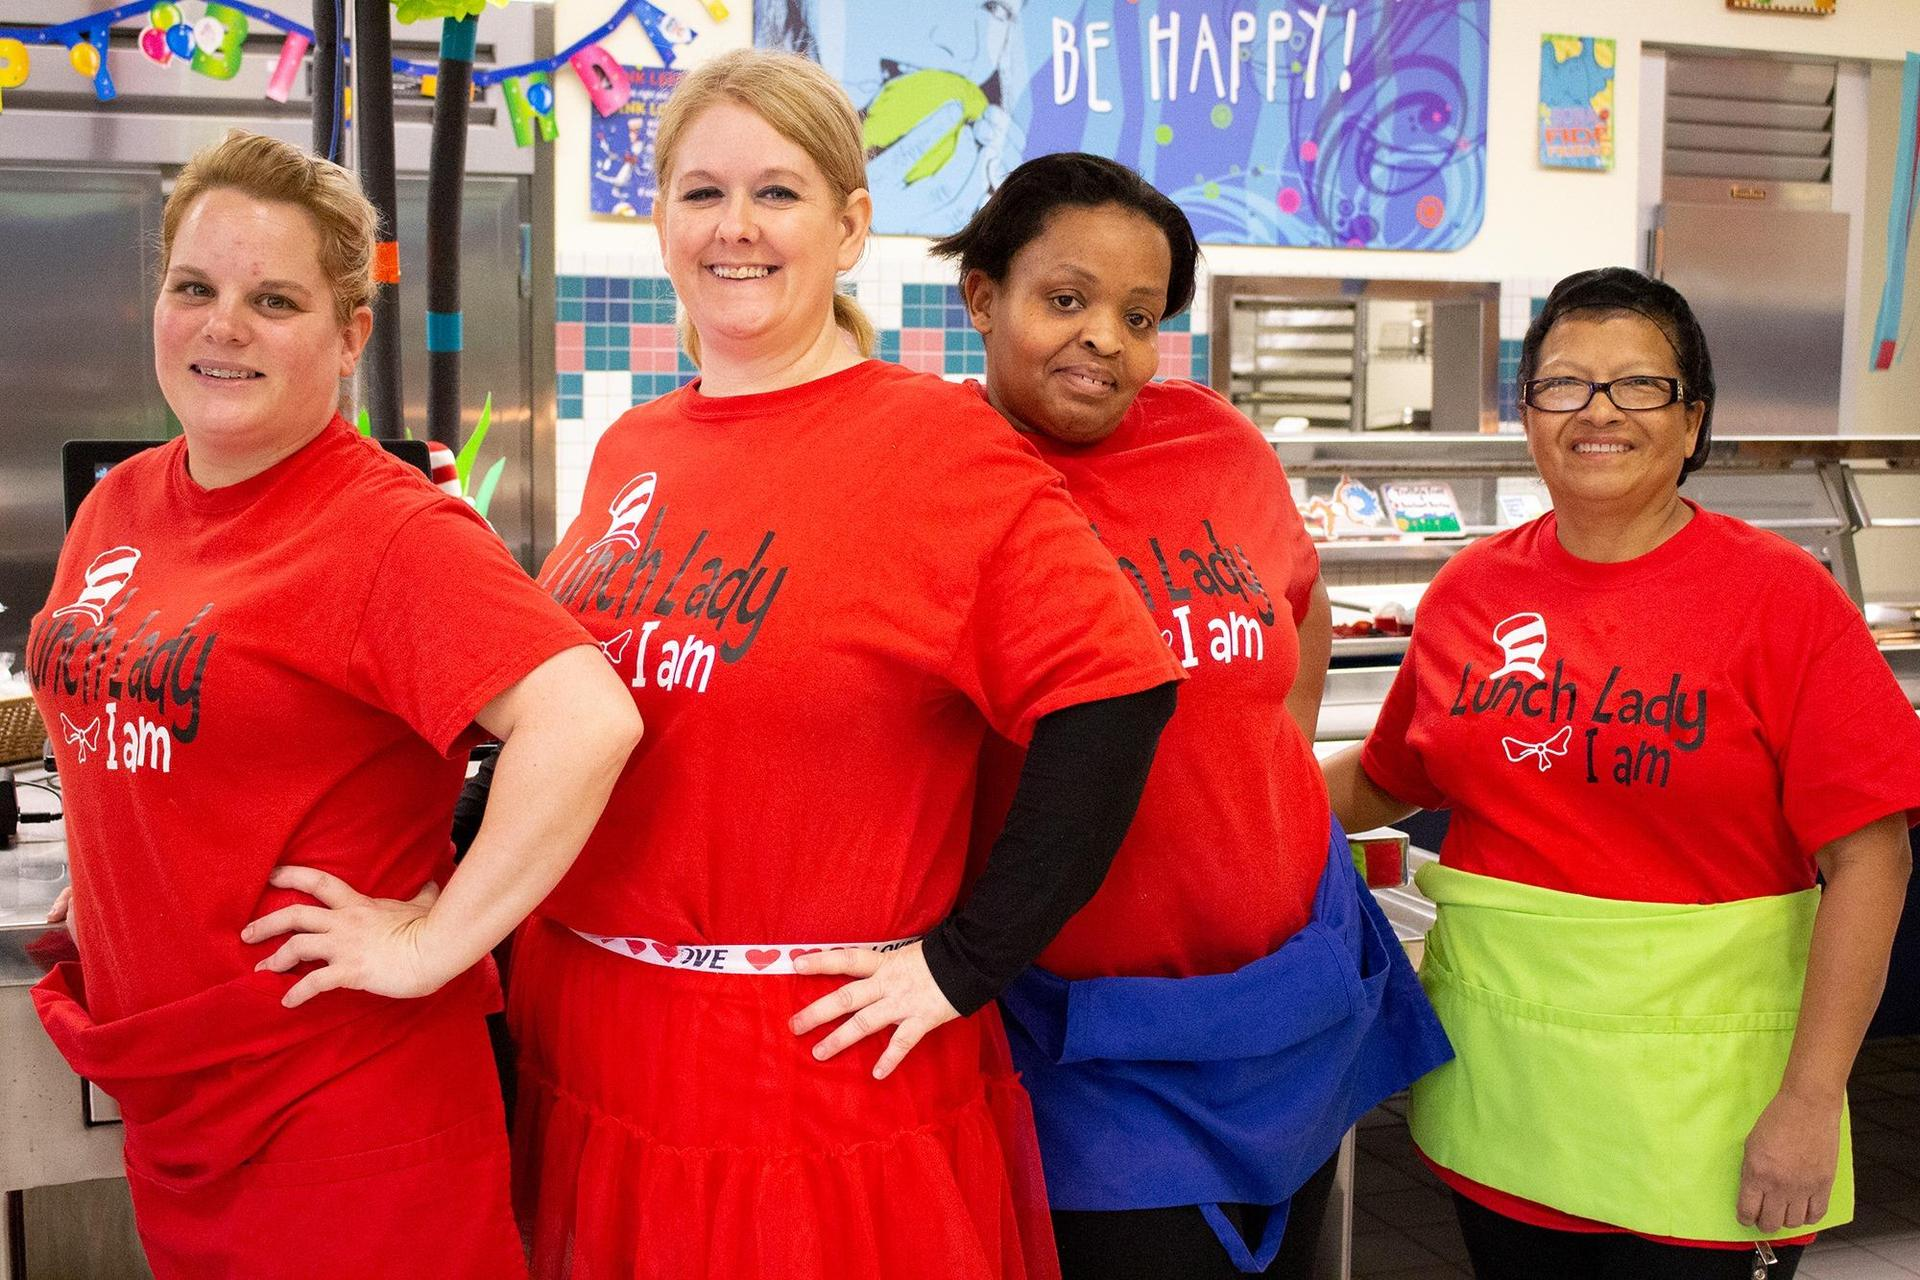 4 ladies of the Northside nutrition team dressed up for Dr. Seuss's birthday